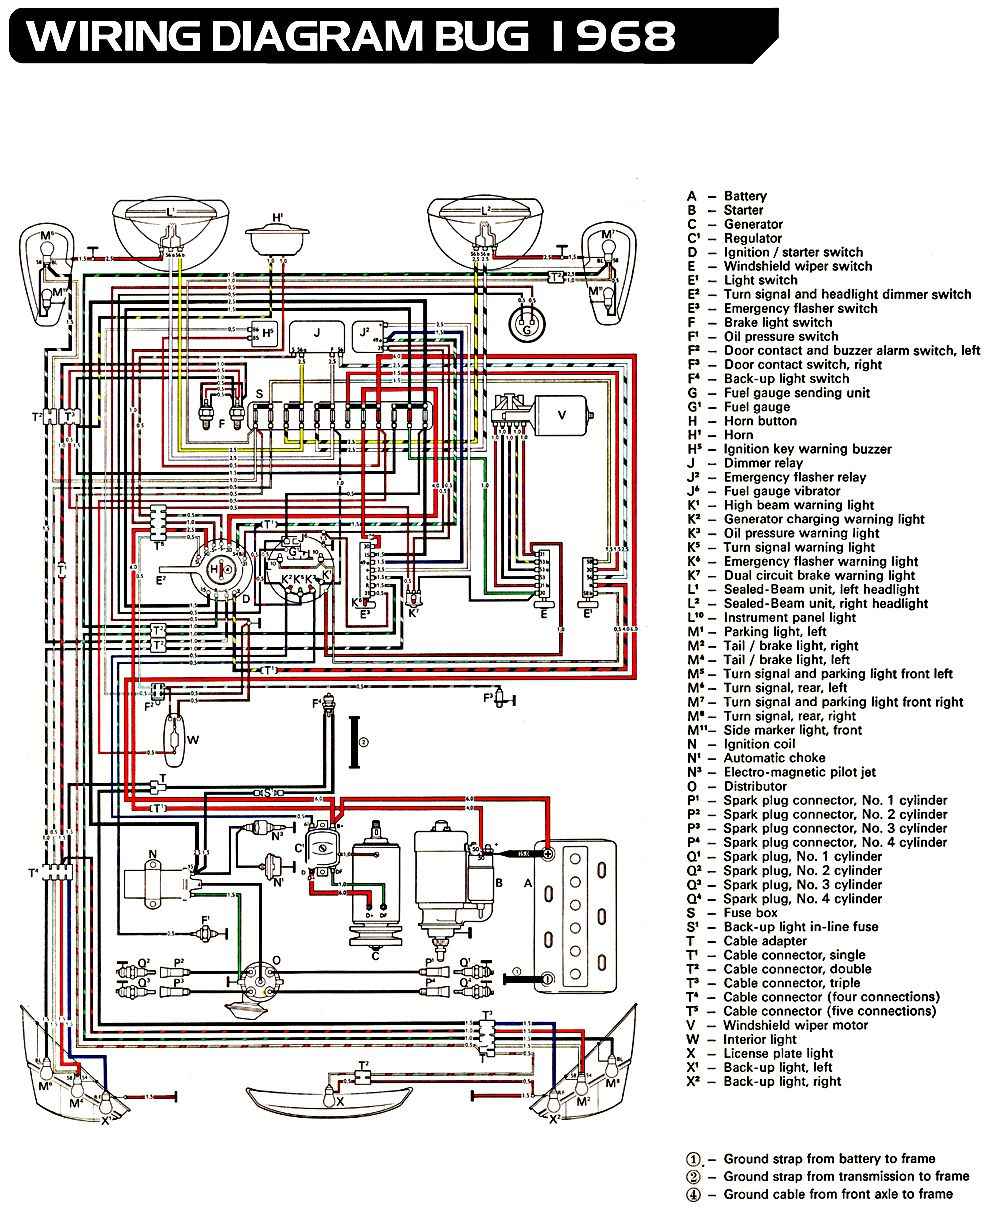 3a1908112d3826270ed5e3be362292bf vw bug ignition wiring diagram 73 vw wiring diagram free vw bug wiring diagram at n-0.co